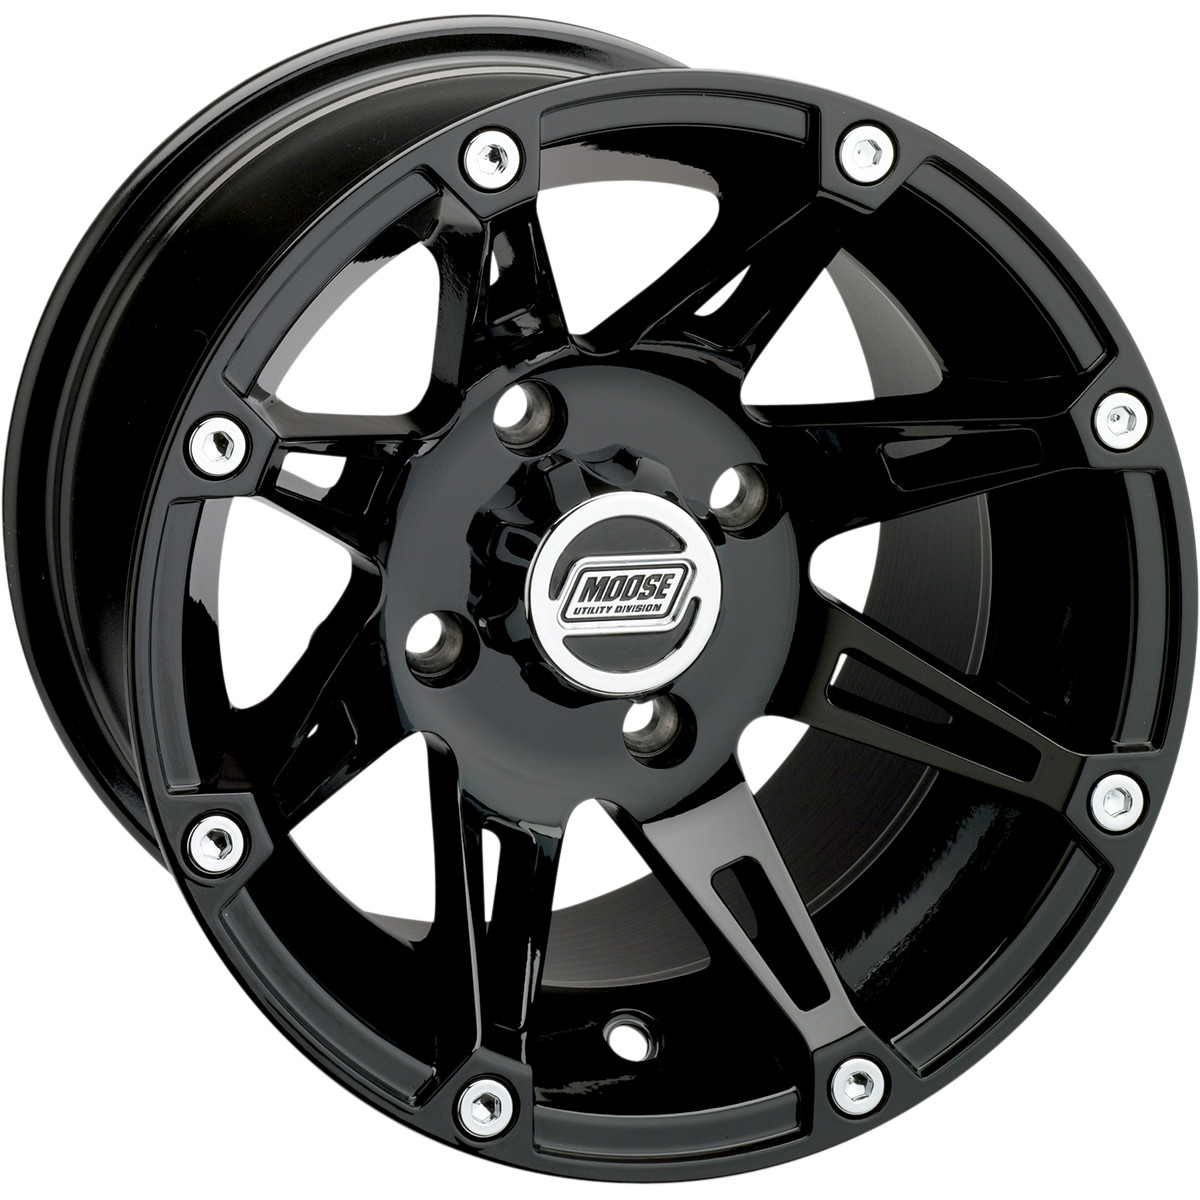 Moose Racing 387X Wheel (Front) 14X7 Black Fits 02-03 Kawasaki KVF650 PRAIRIE